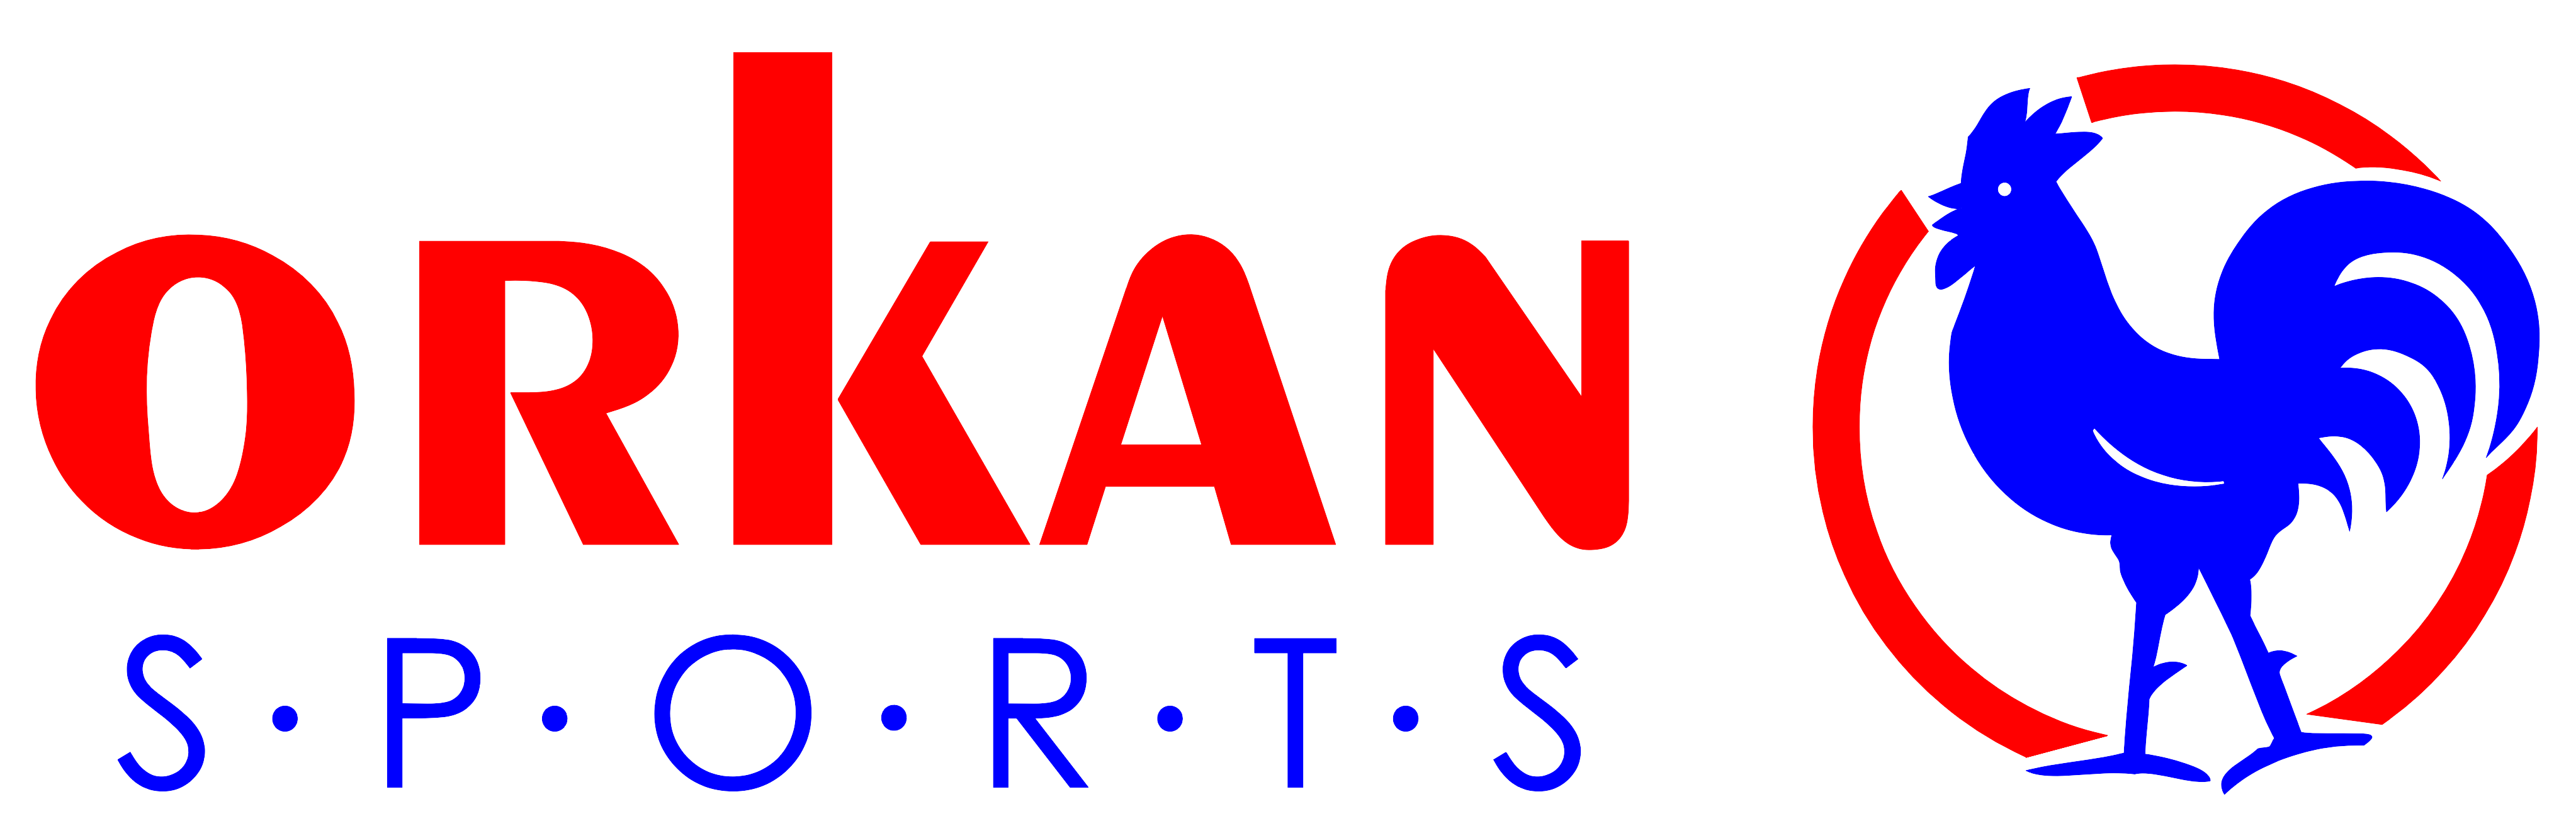 Orkan Logo